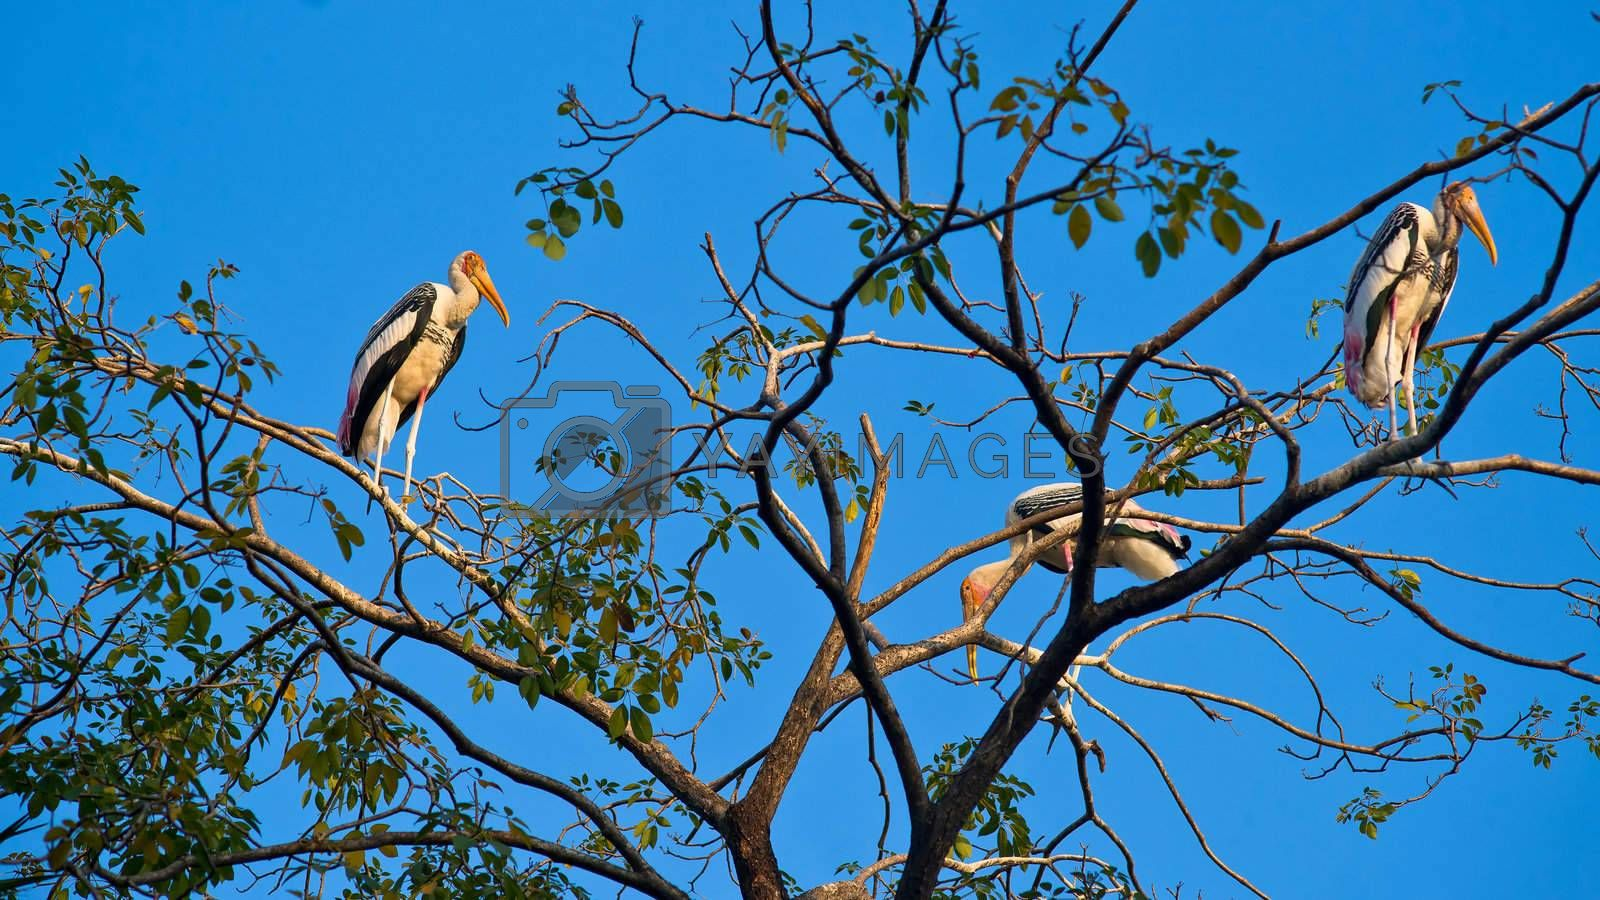 Painted storks on the branch of the tree